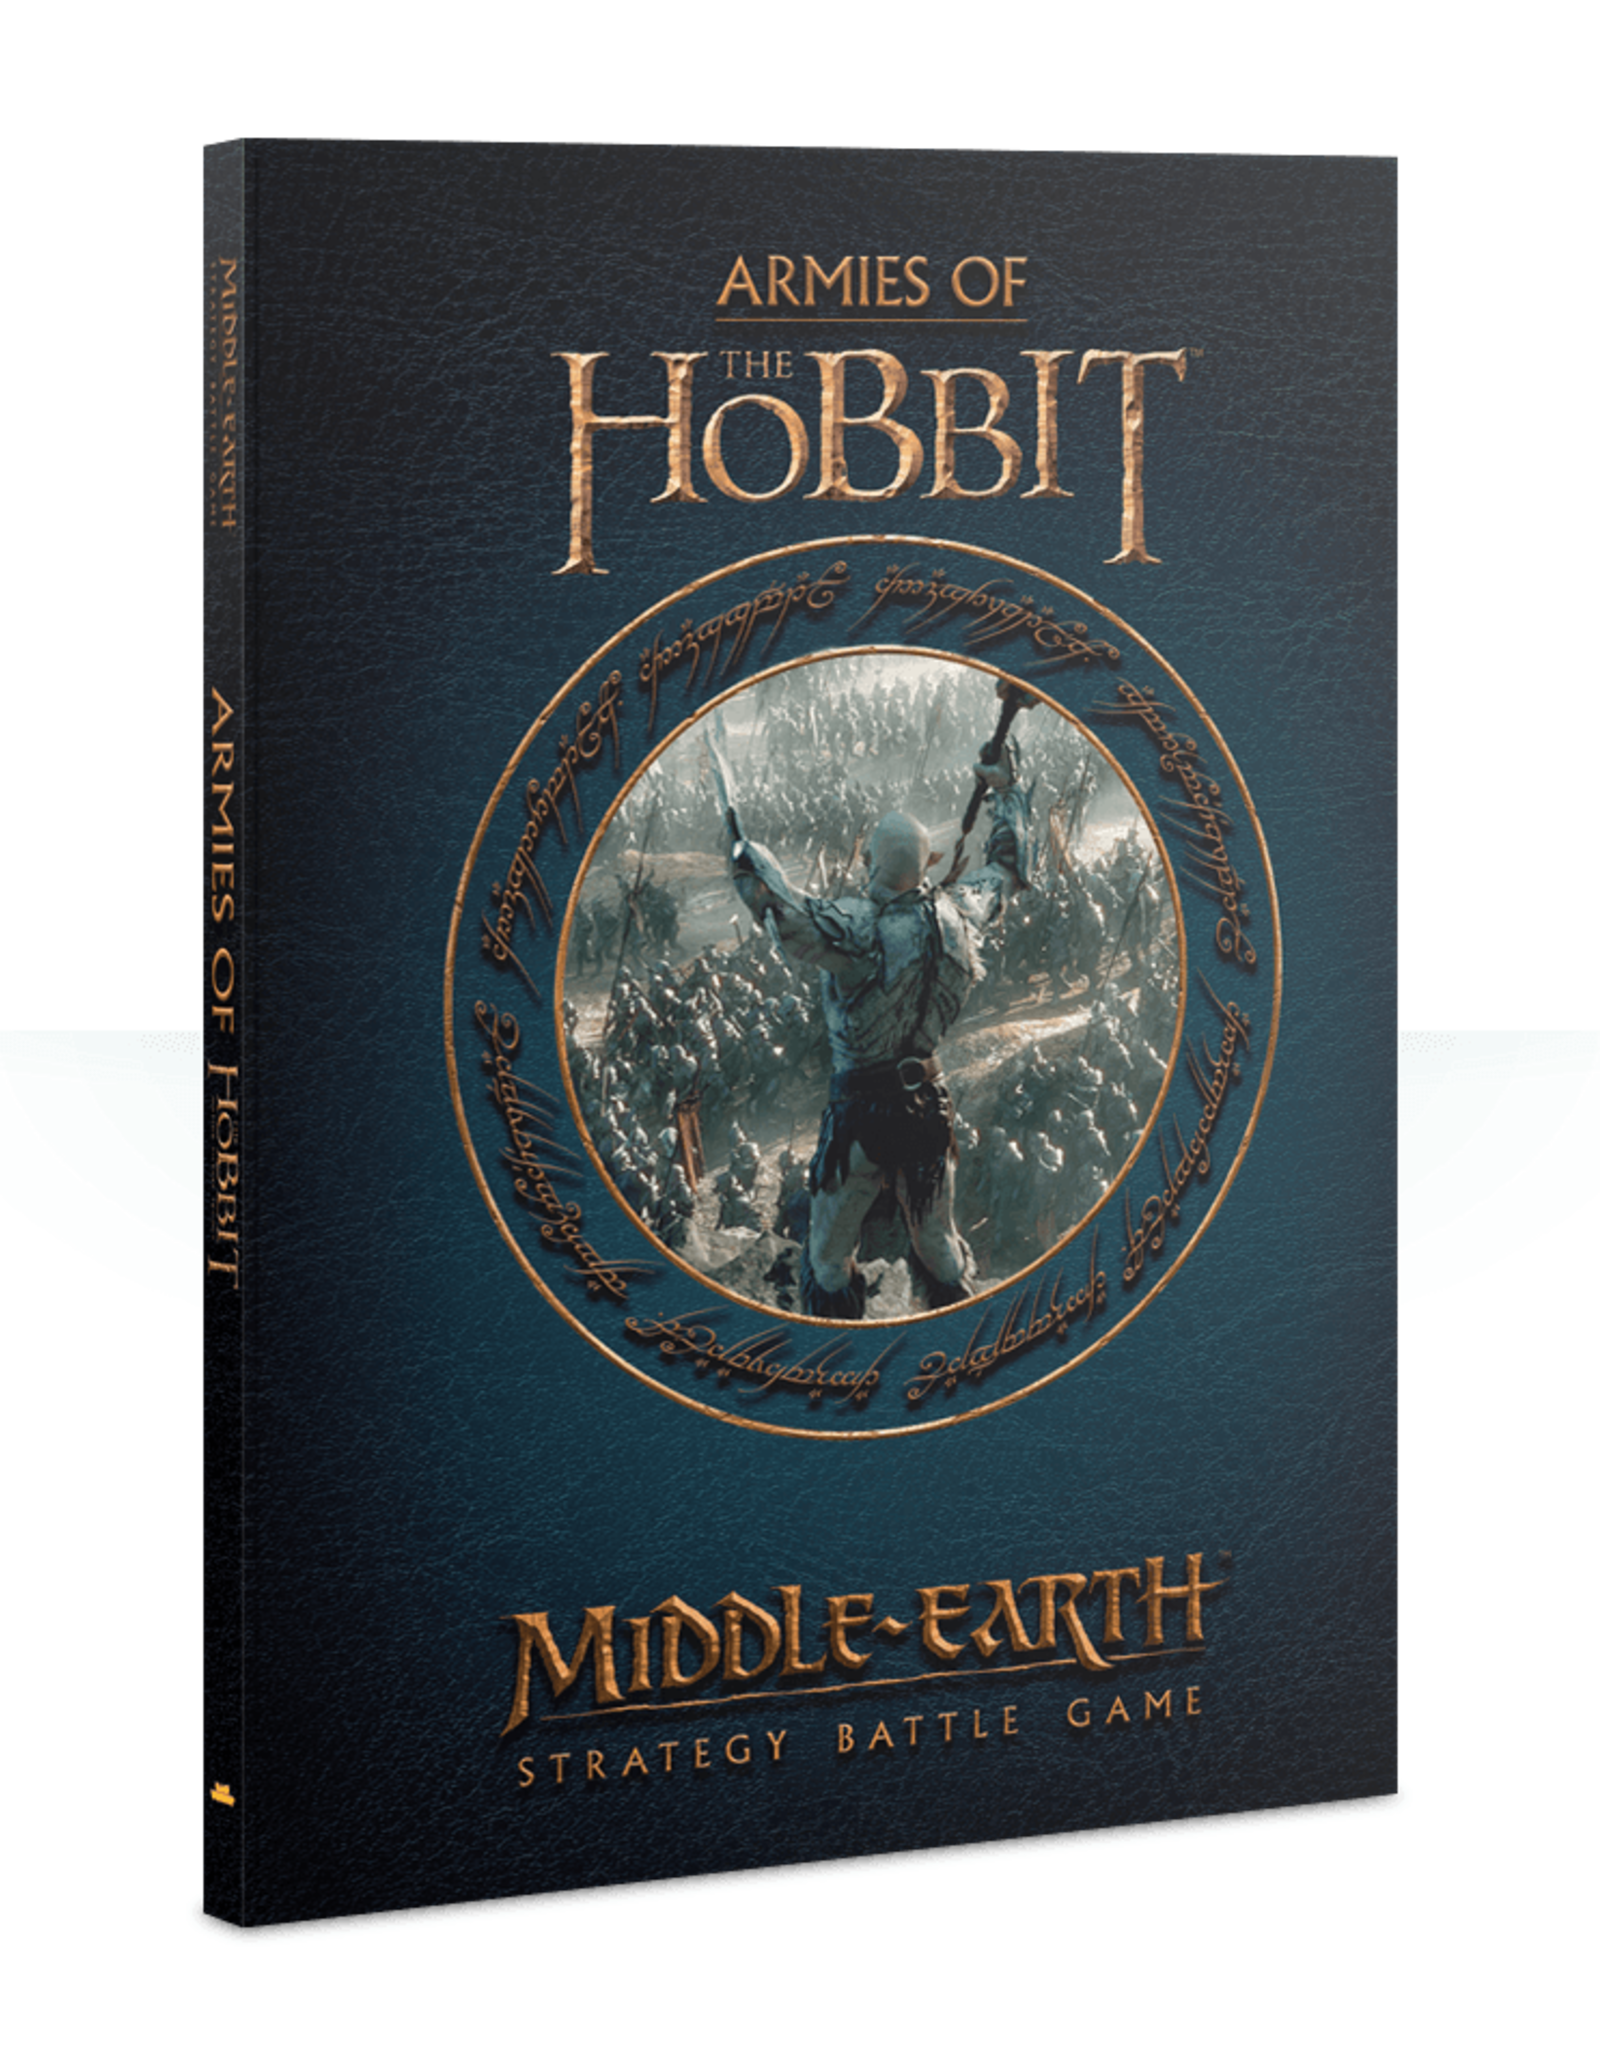 Lord of The Rings Middle -Earth SBG: Armies of the Hobbit